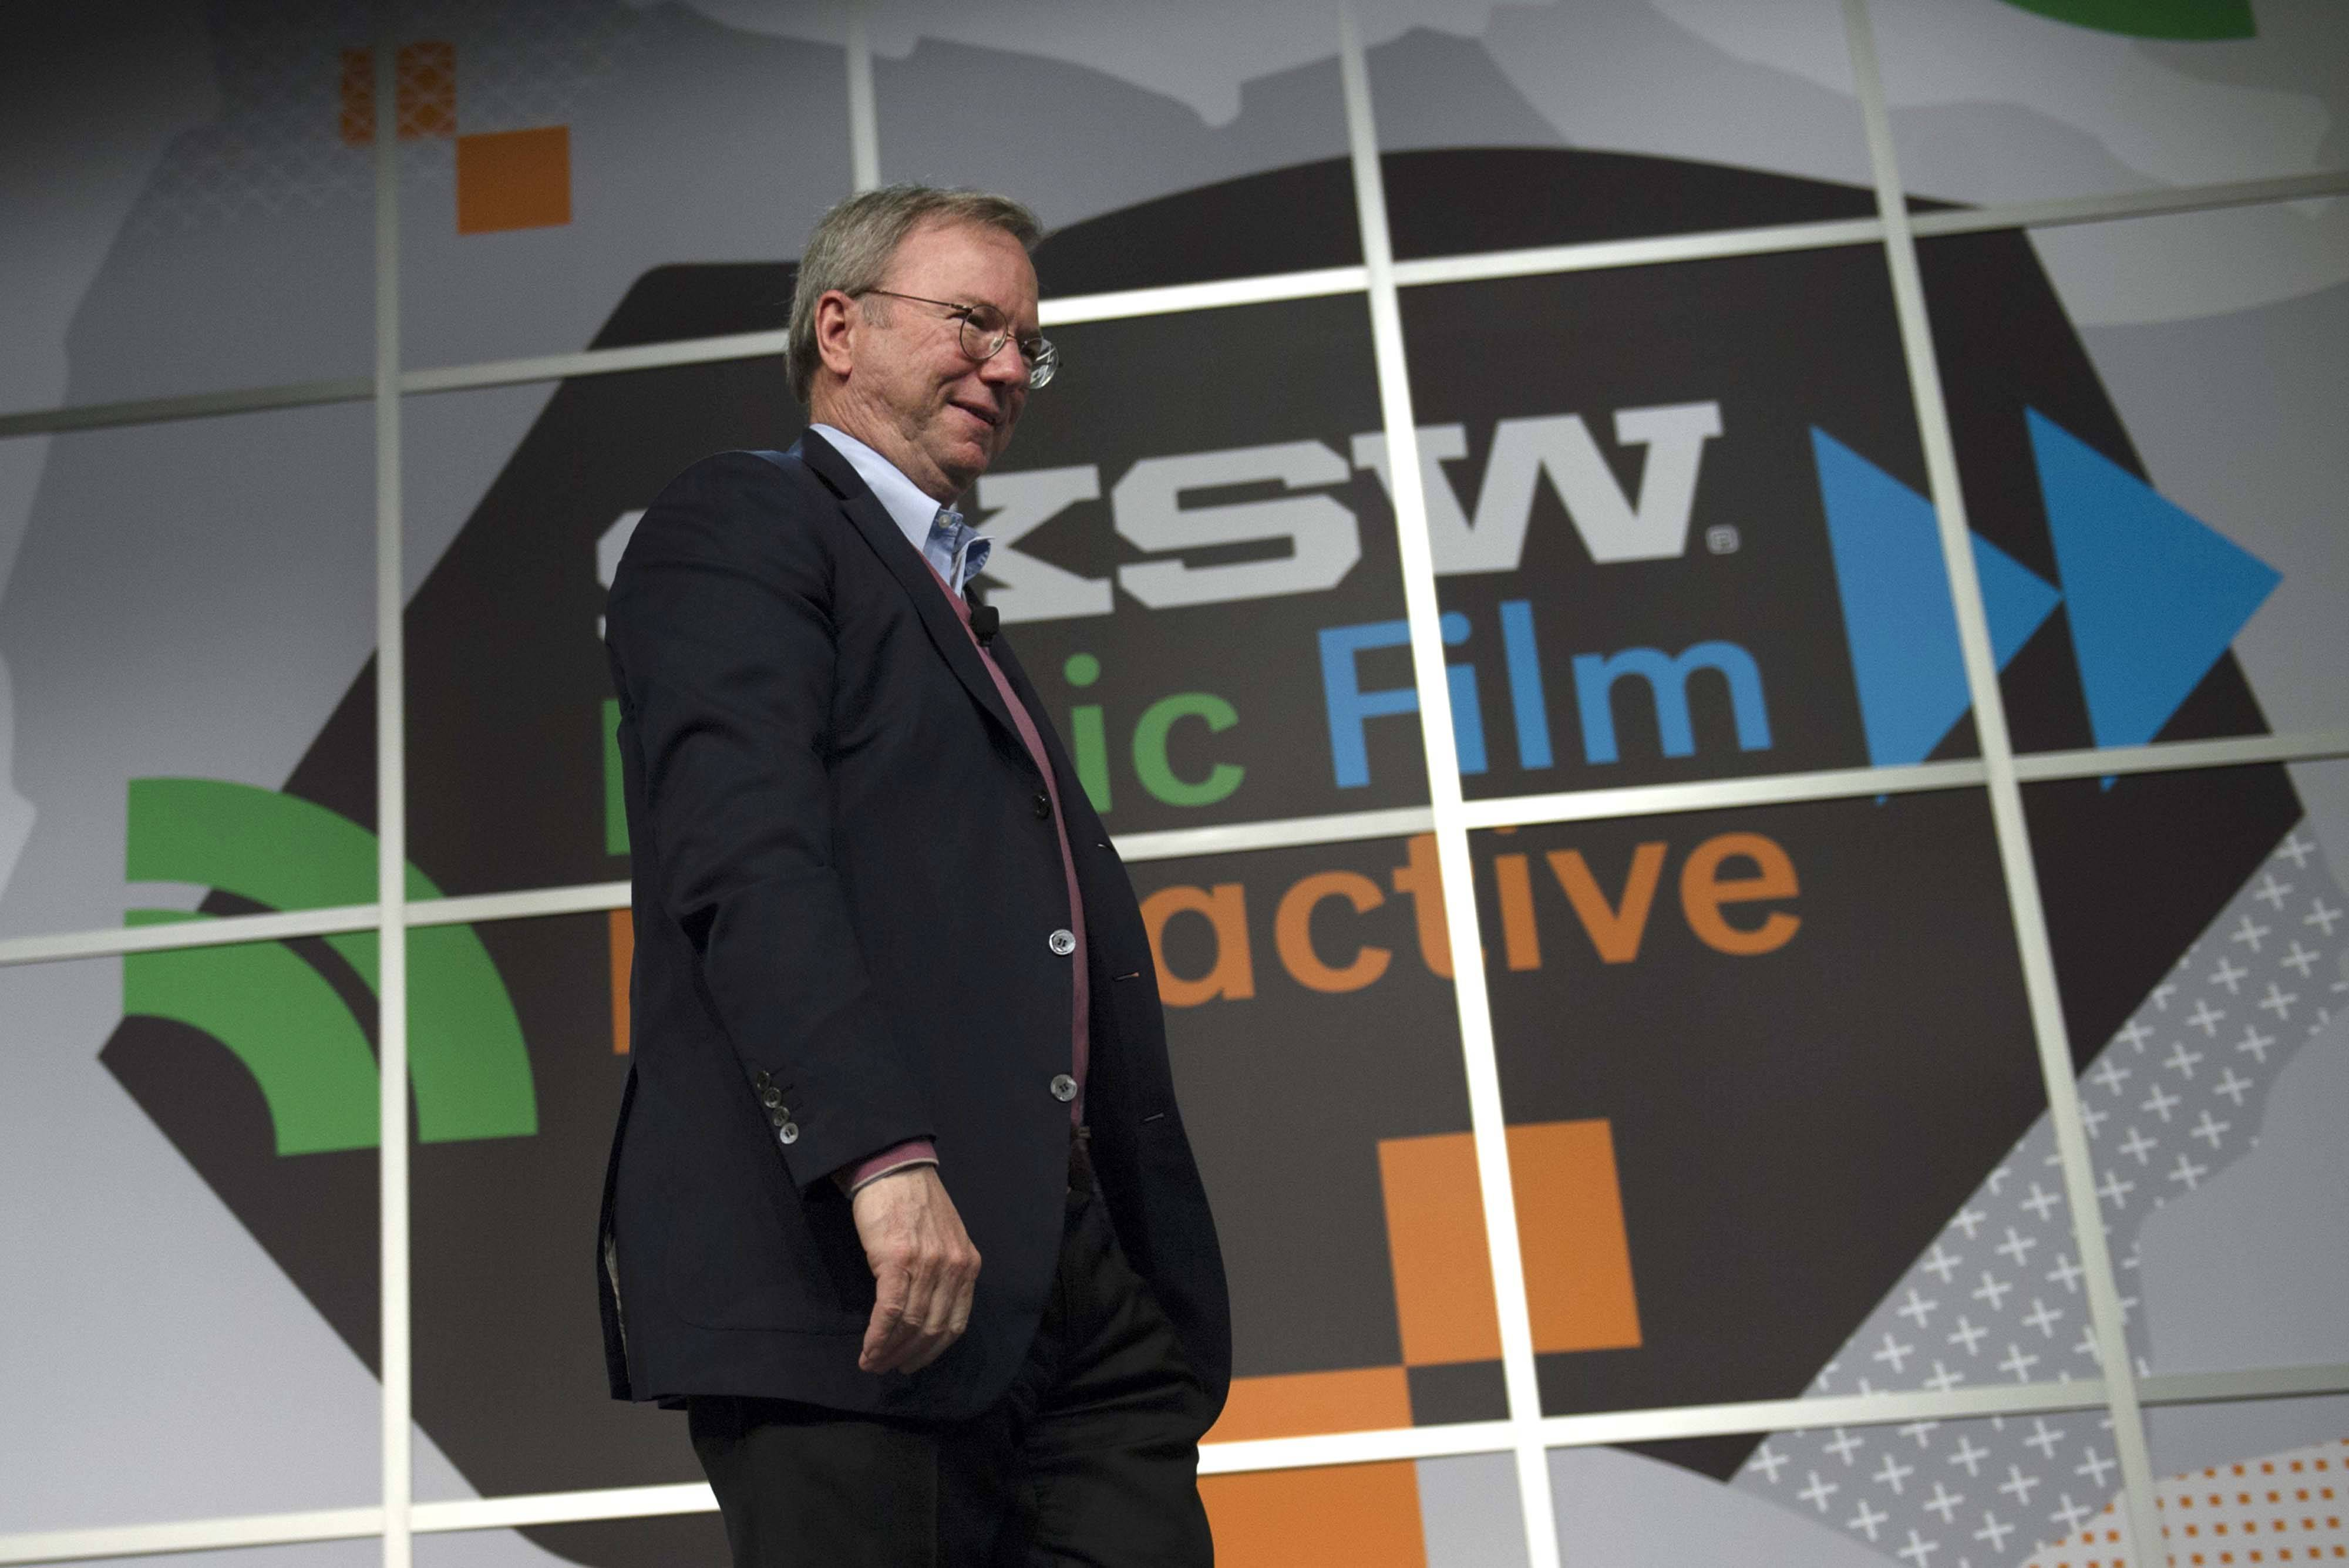 Eric Schmidt, executive chairman of Google Inc., exits after speaking Friday at the South By Southwest Interactive Festival in Austin, Texas.